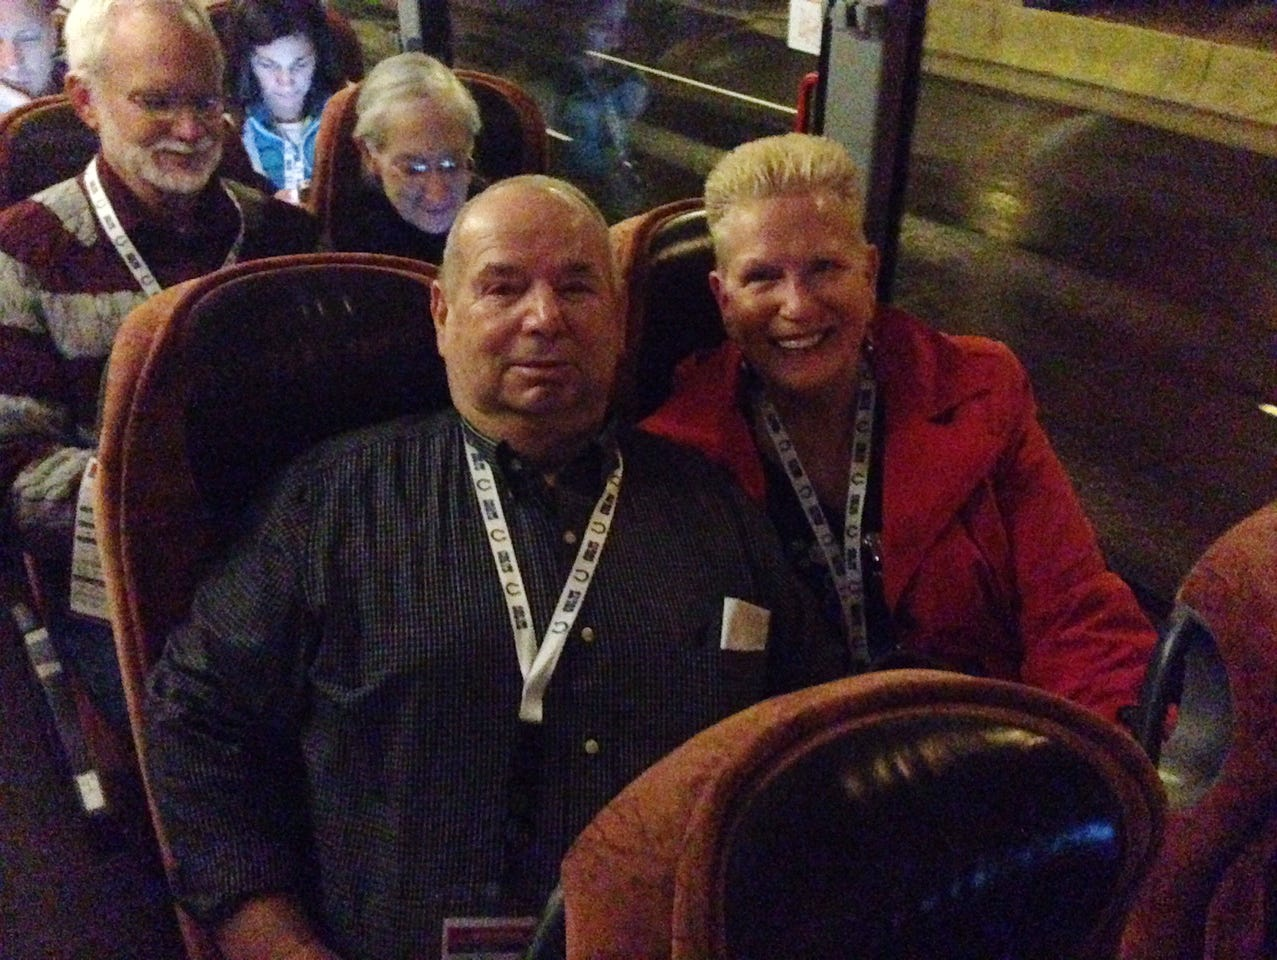 Bud and Ellen Wright are in Phoenix for the Super Bowl, courtesy of Colts Owner Jim Irsay.